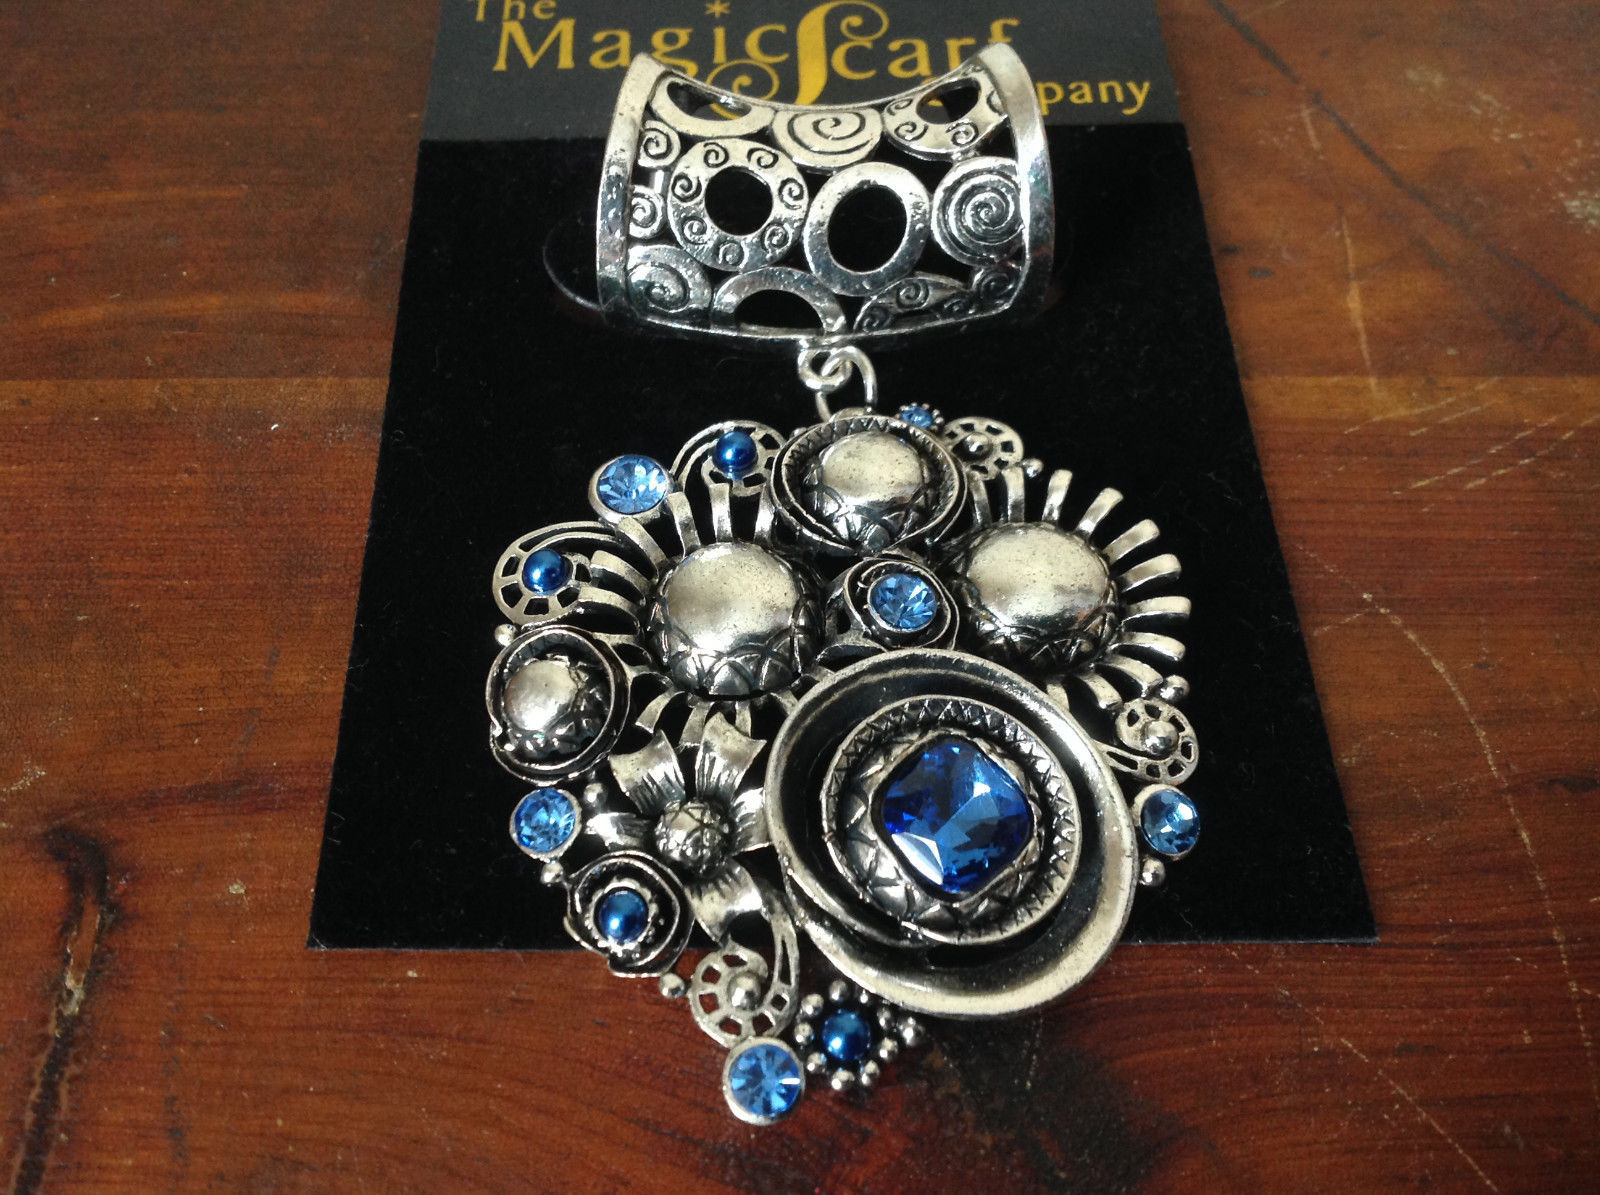 Charming Silver Tone Scarf Pendant Large and Small Blue Crystals by Magic Scarf